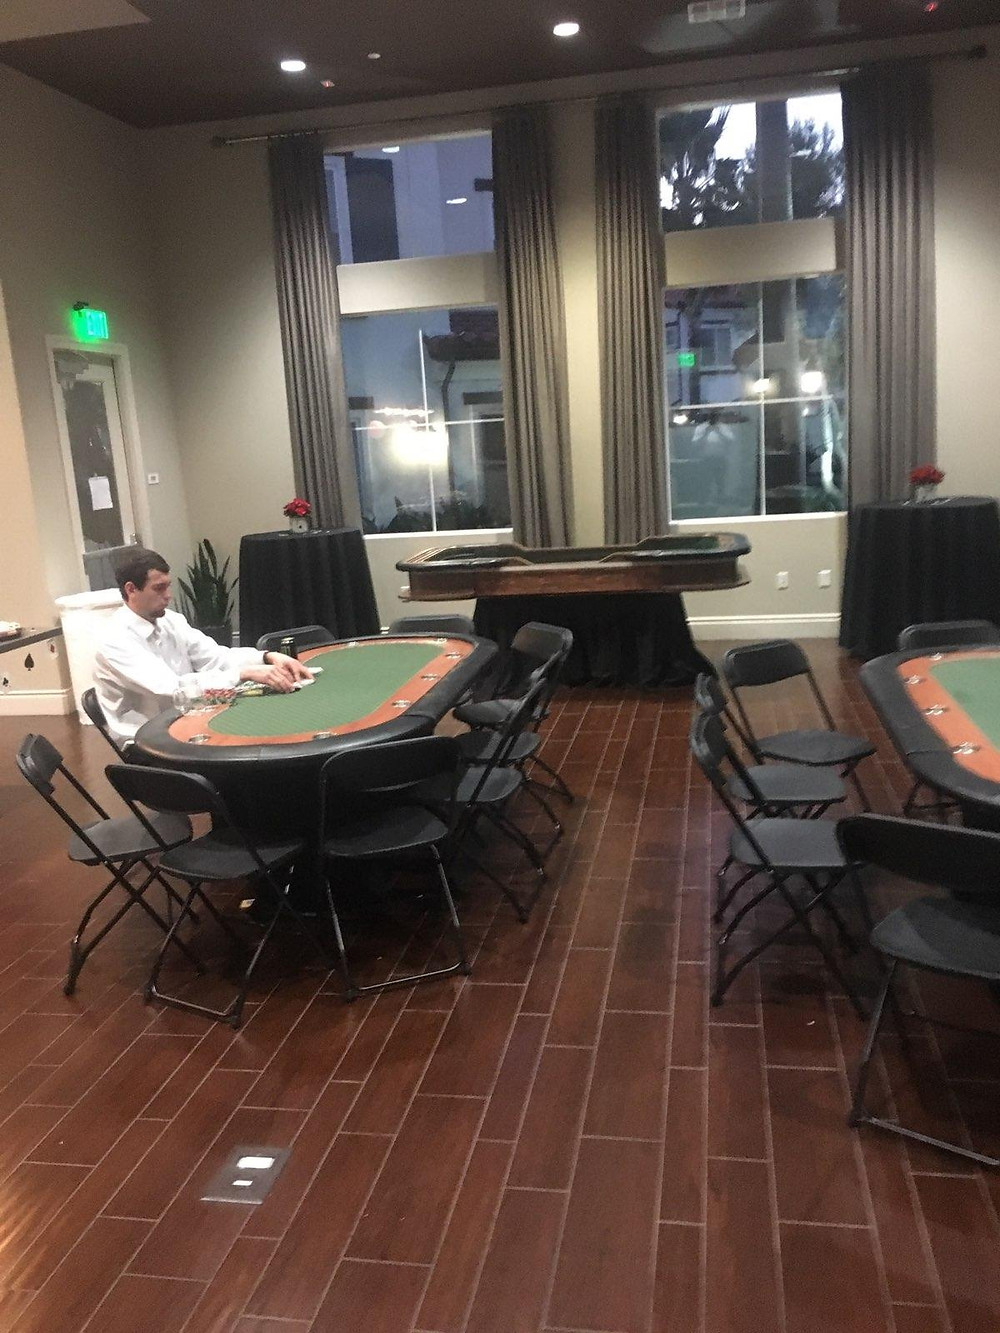 Casino party rentals in California 2019